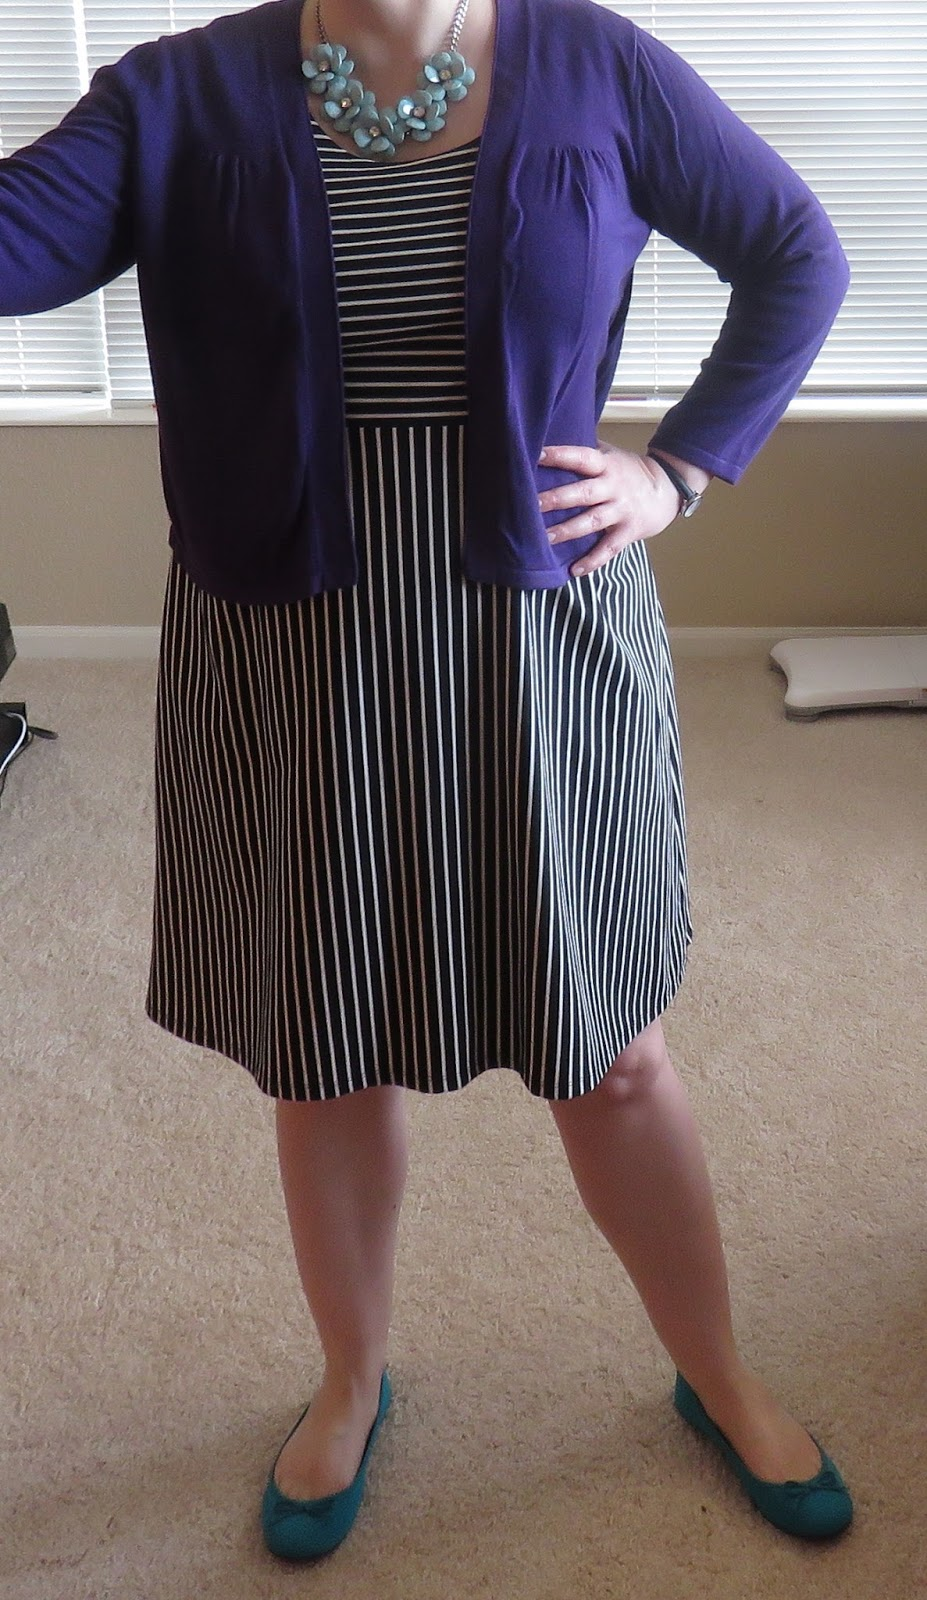 A Striped Dress Is Much More My Style And I Think This Particular One Interesting With The Stripes That Go In Two Different Directions